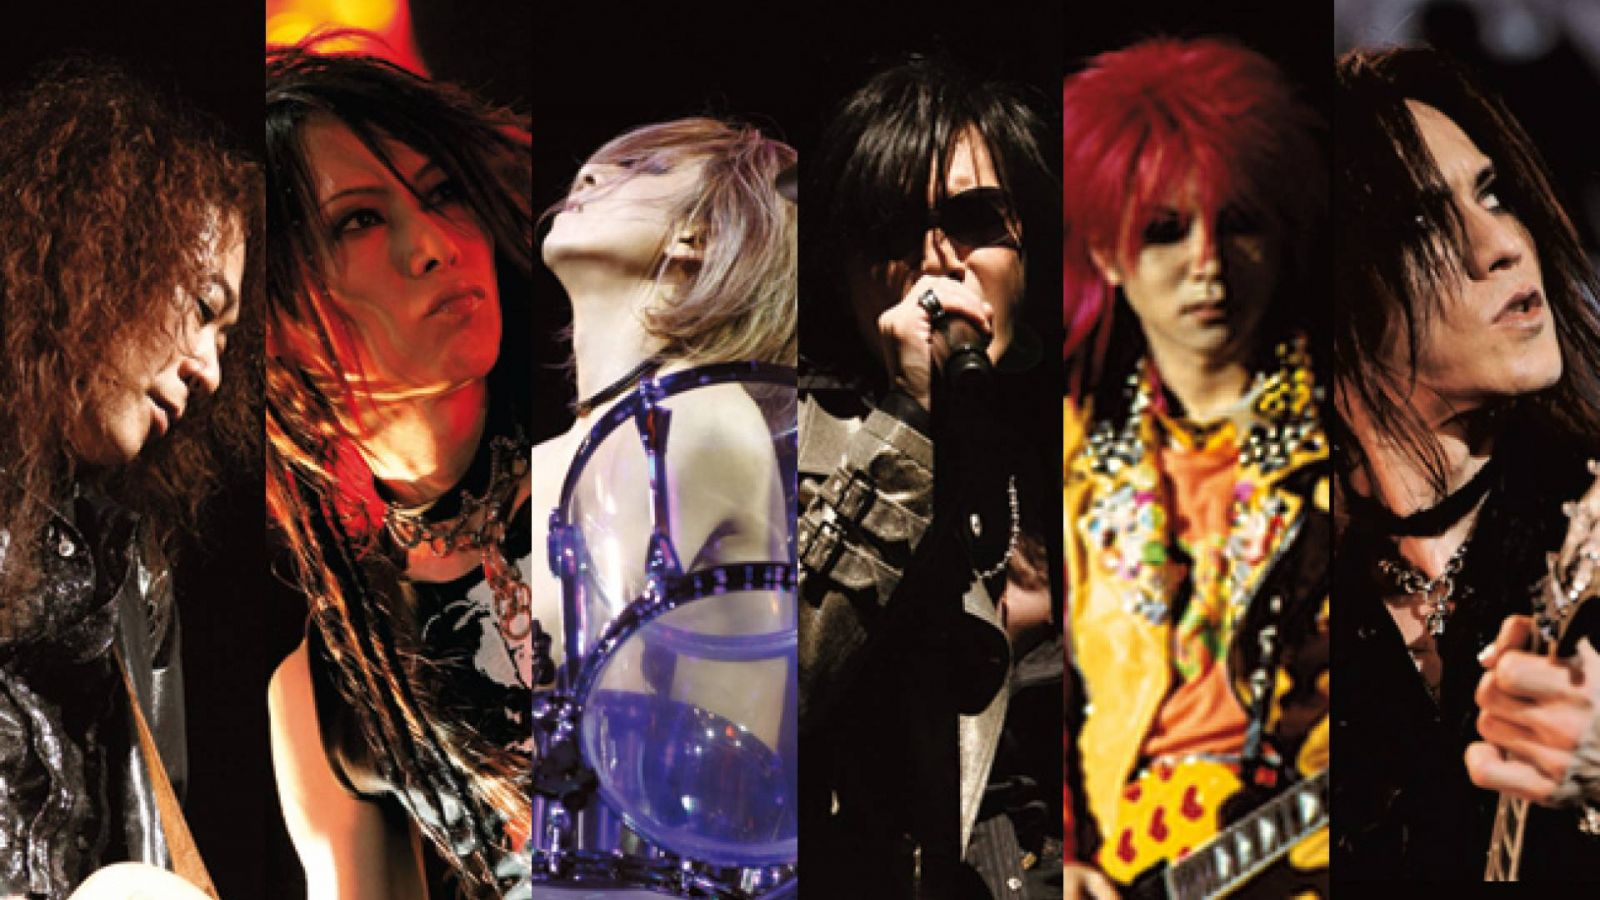 X JAPAN ~ Invincible Night, Tokyo Dome © X Japan Production Management Committee